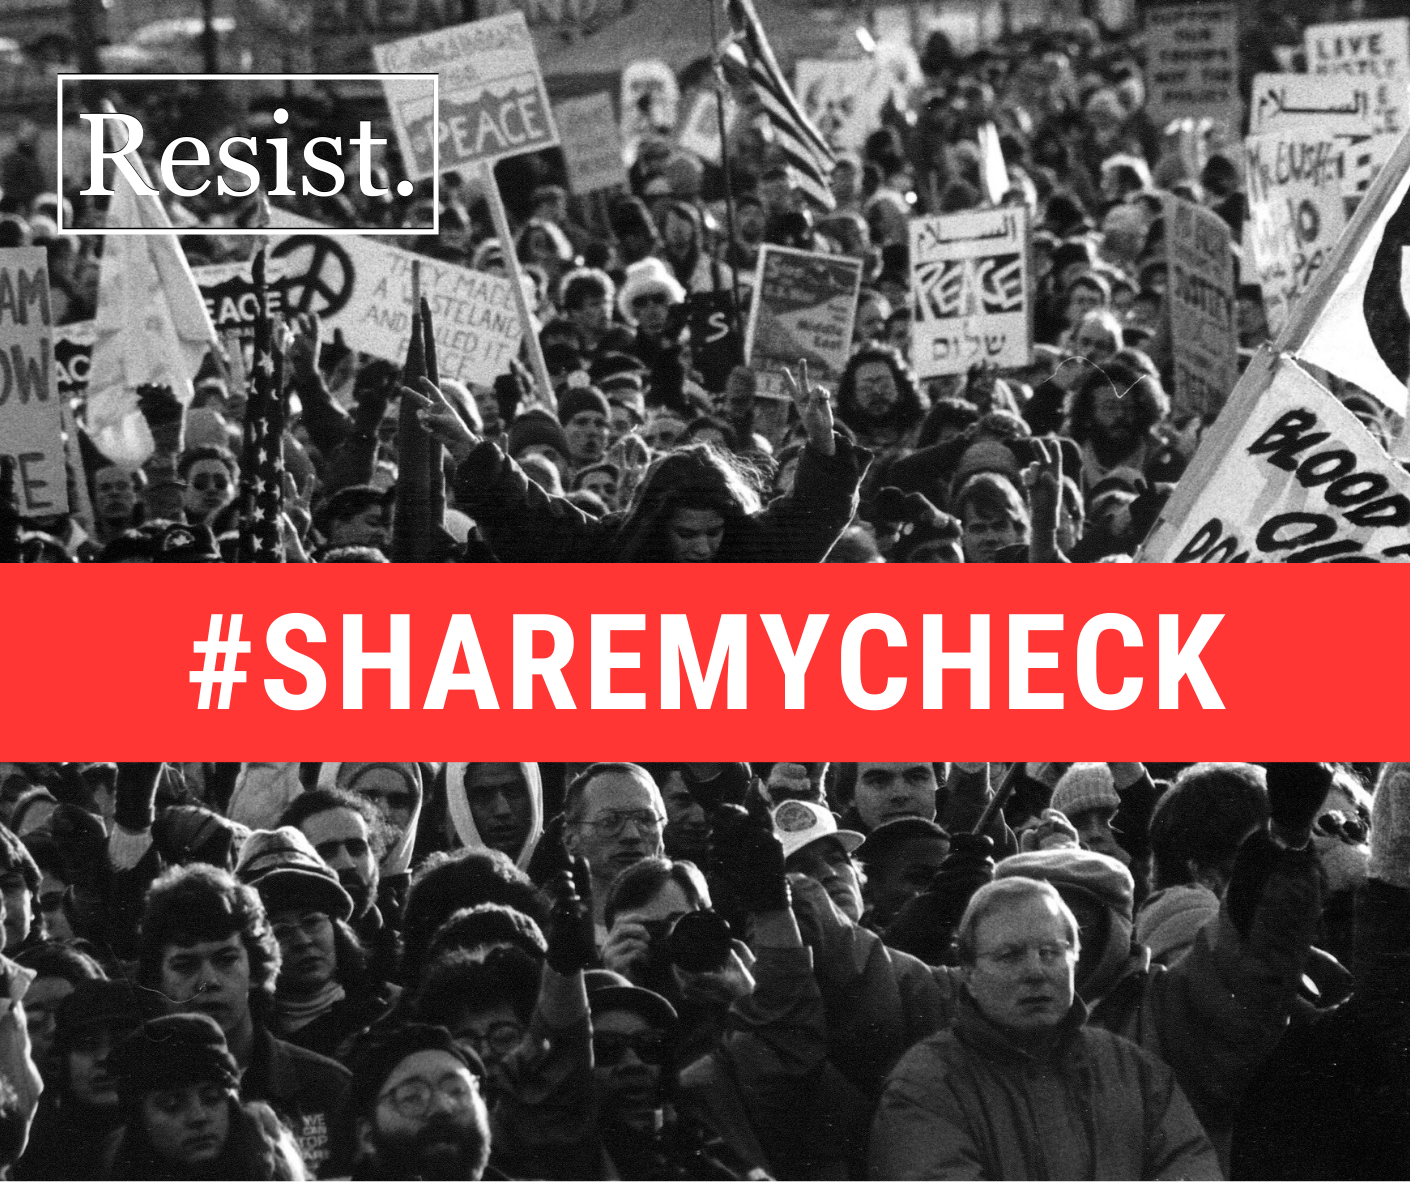 #sharemycheck with Resist image